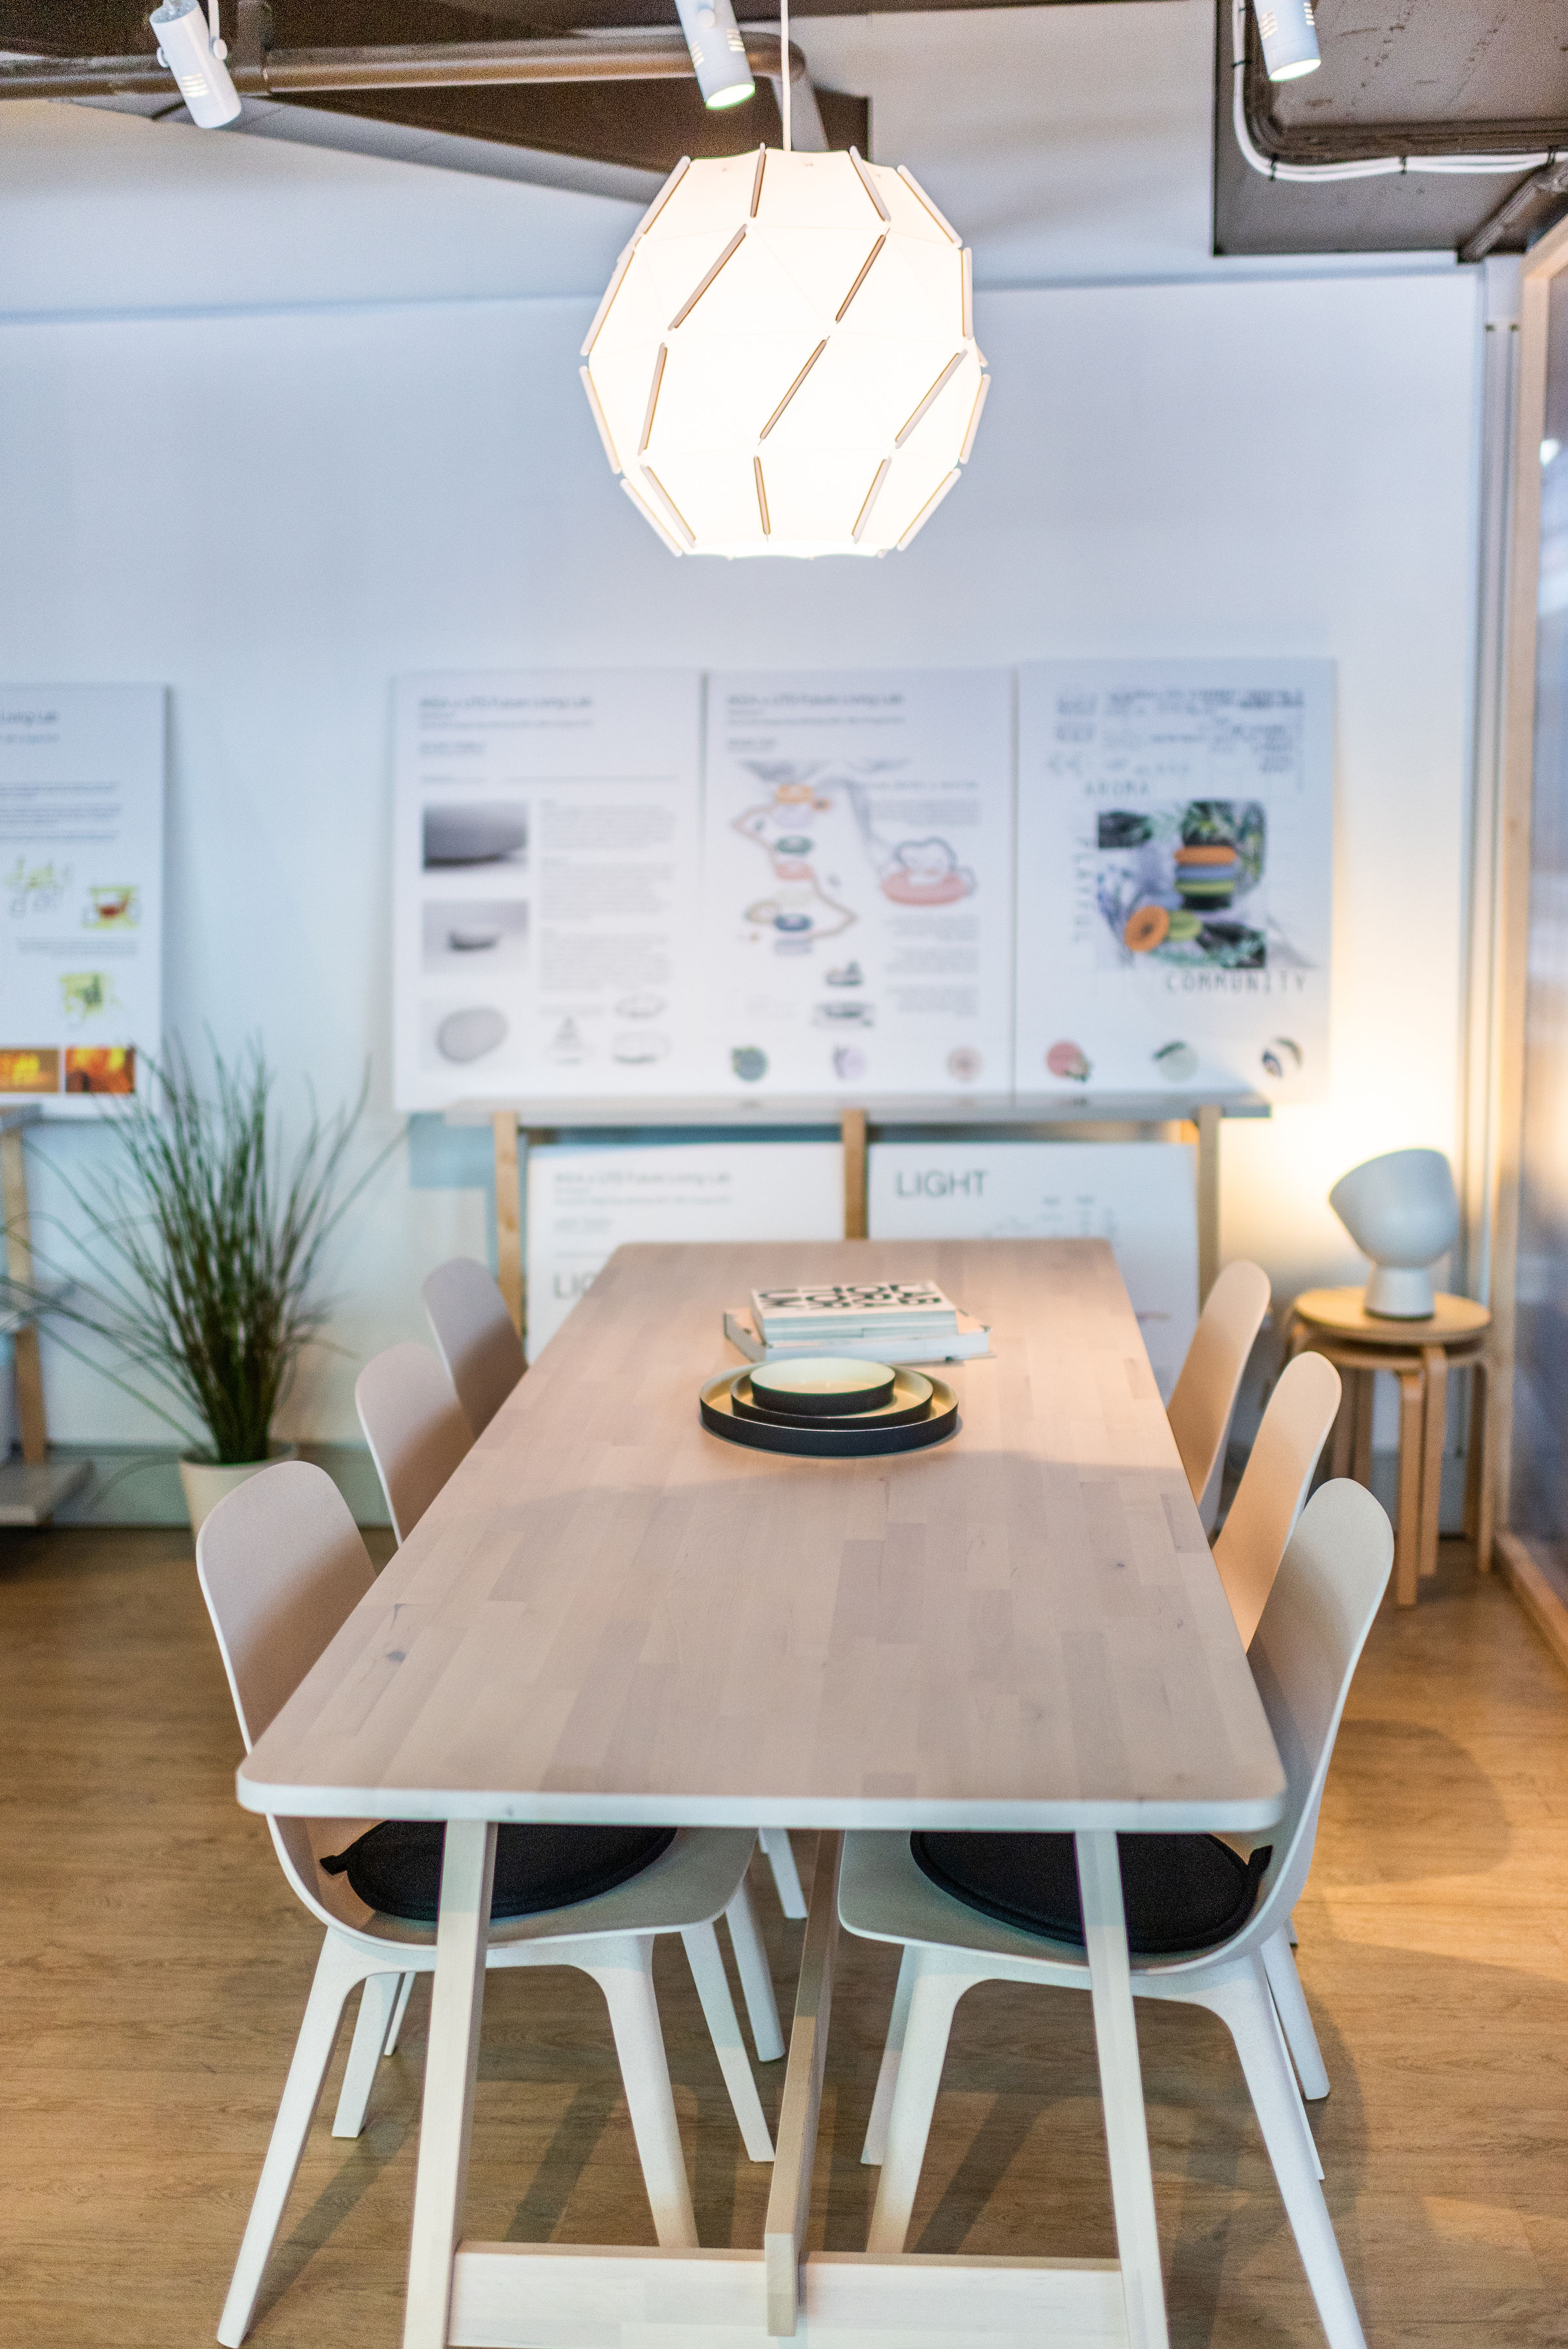 Ikea Teams With University Of Technology Sydney For Future